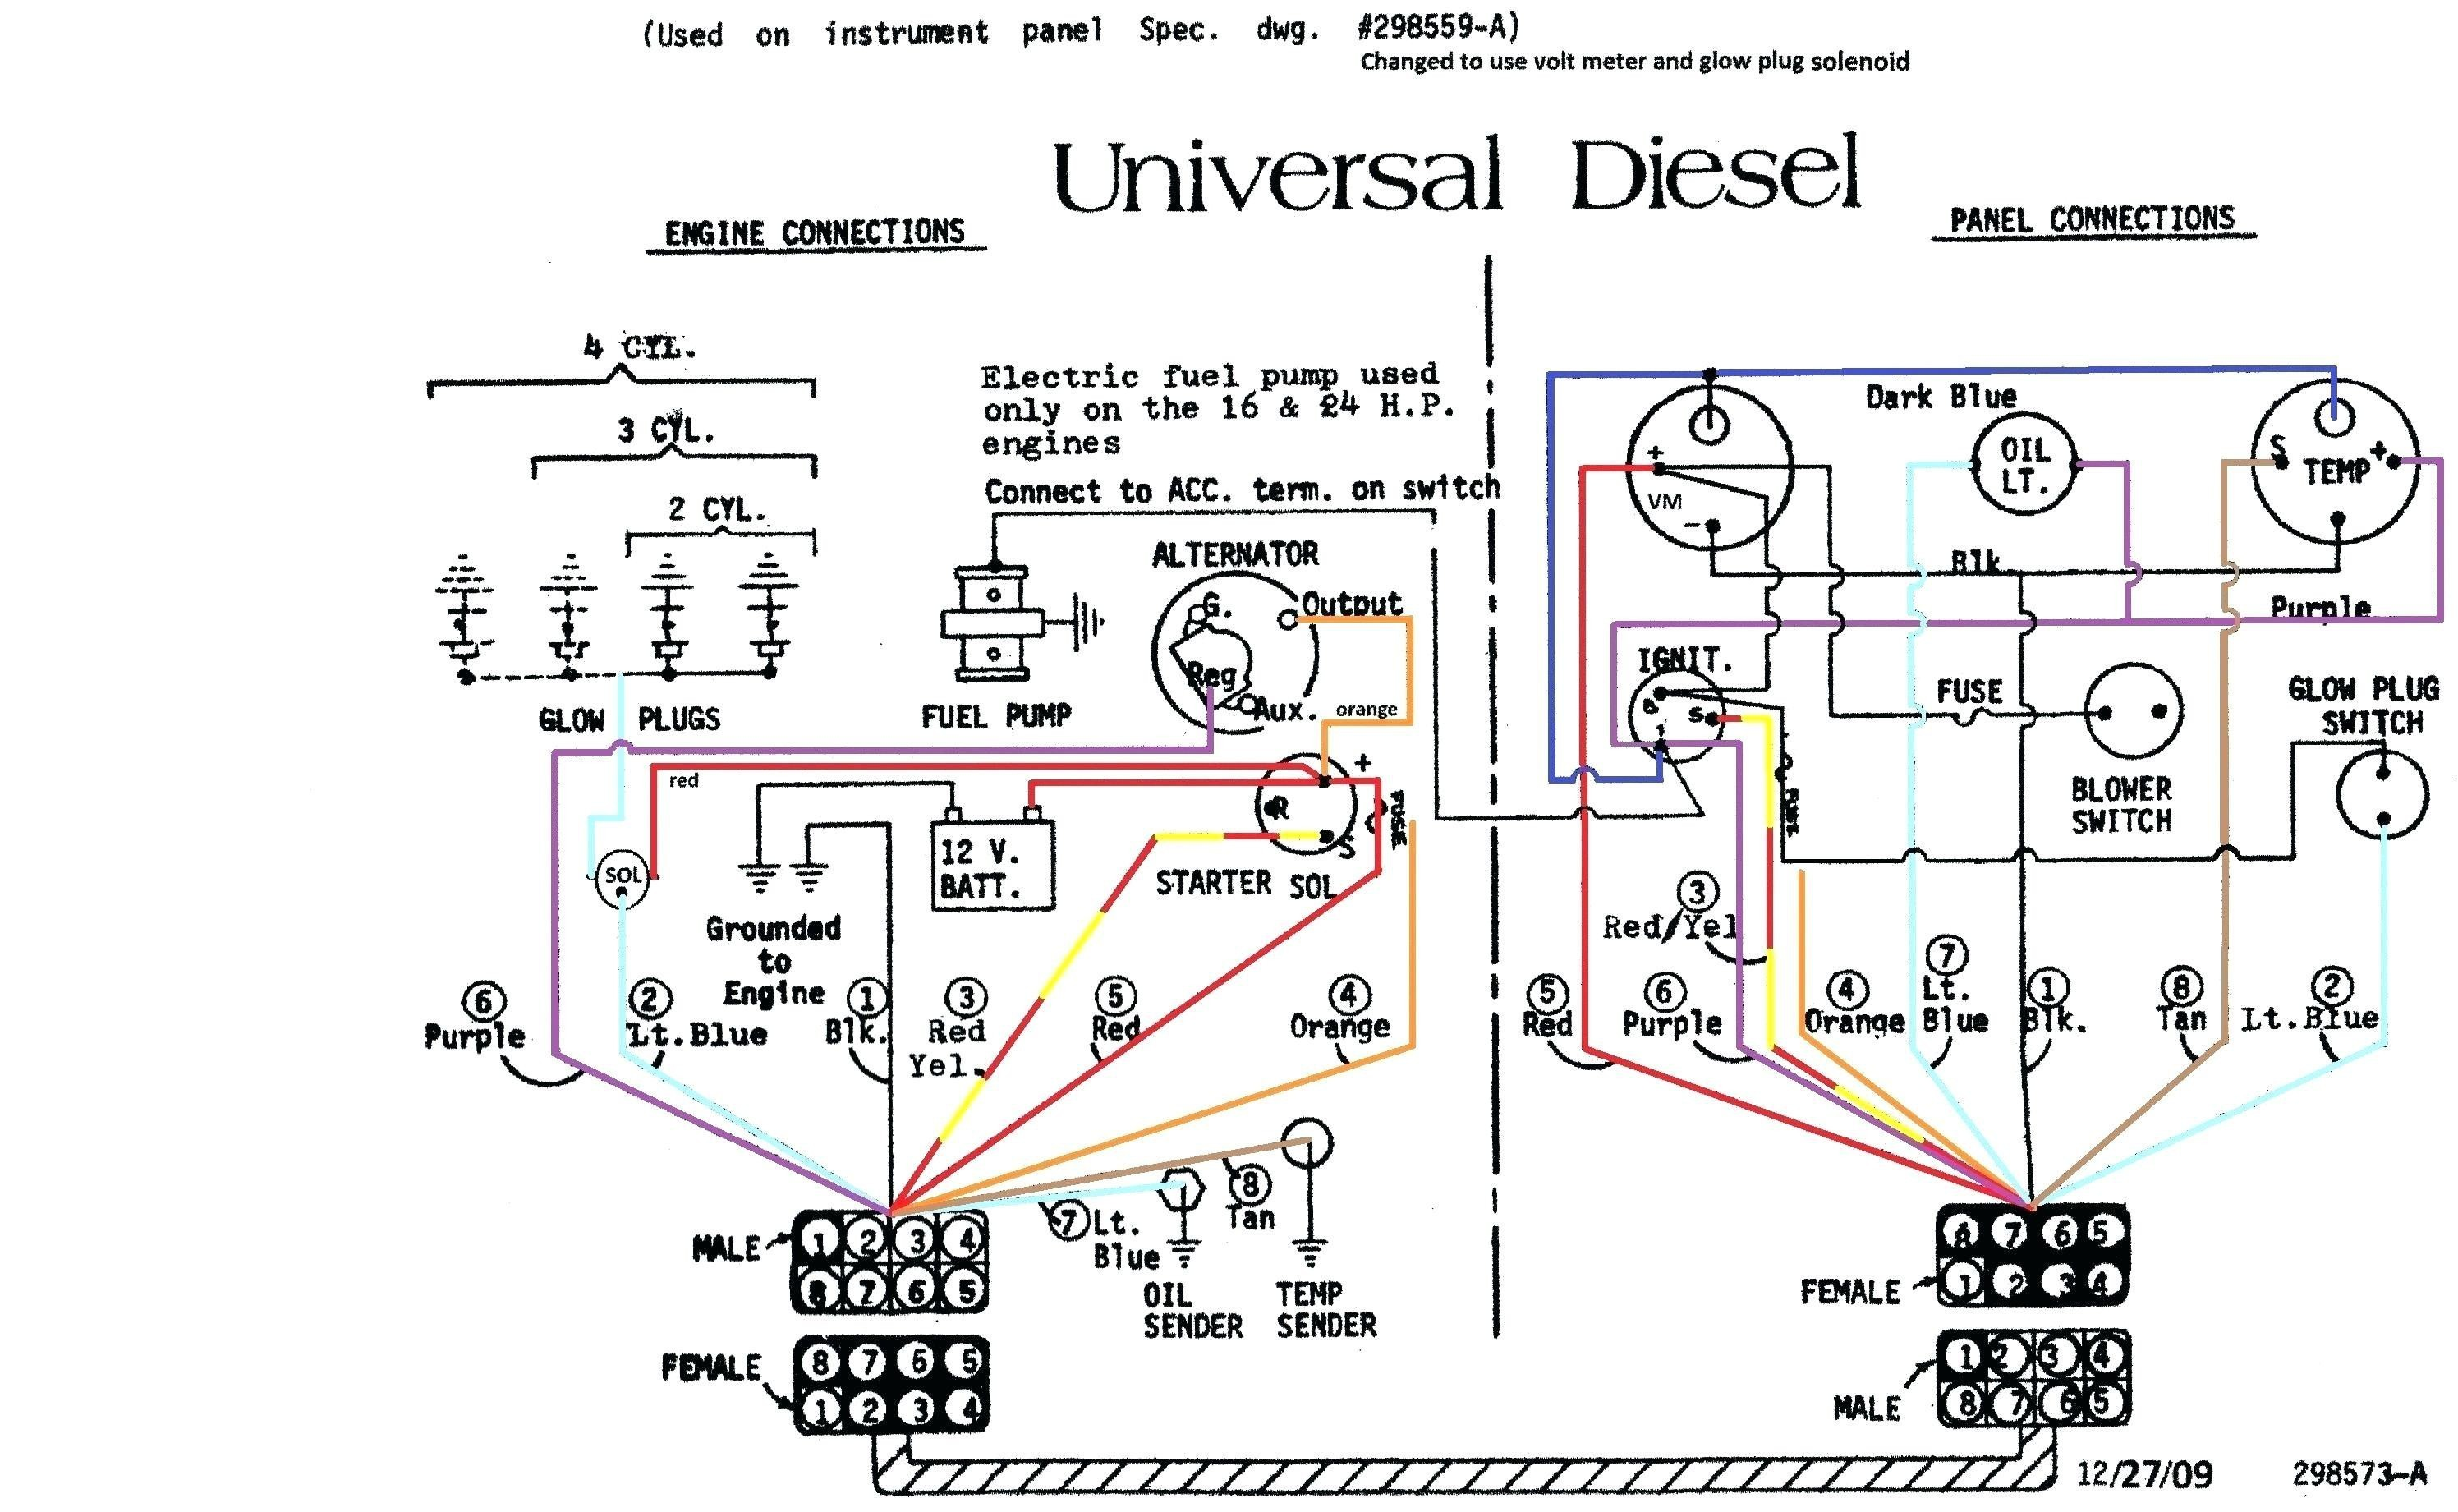 300zx Suspension Diagram Nissan 300zx Diagram Wiring Diagram Datasource Of 300zx Suspension Diagram